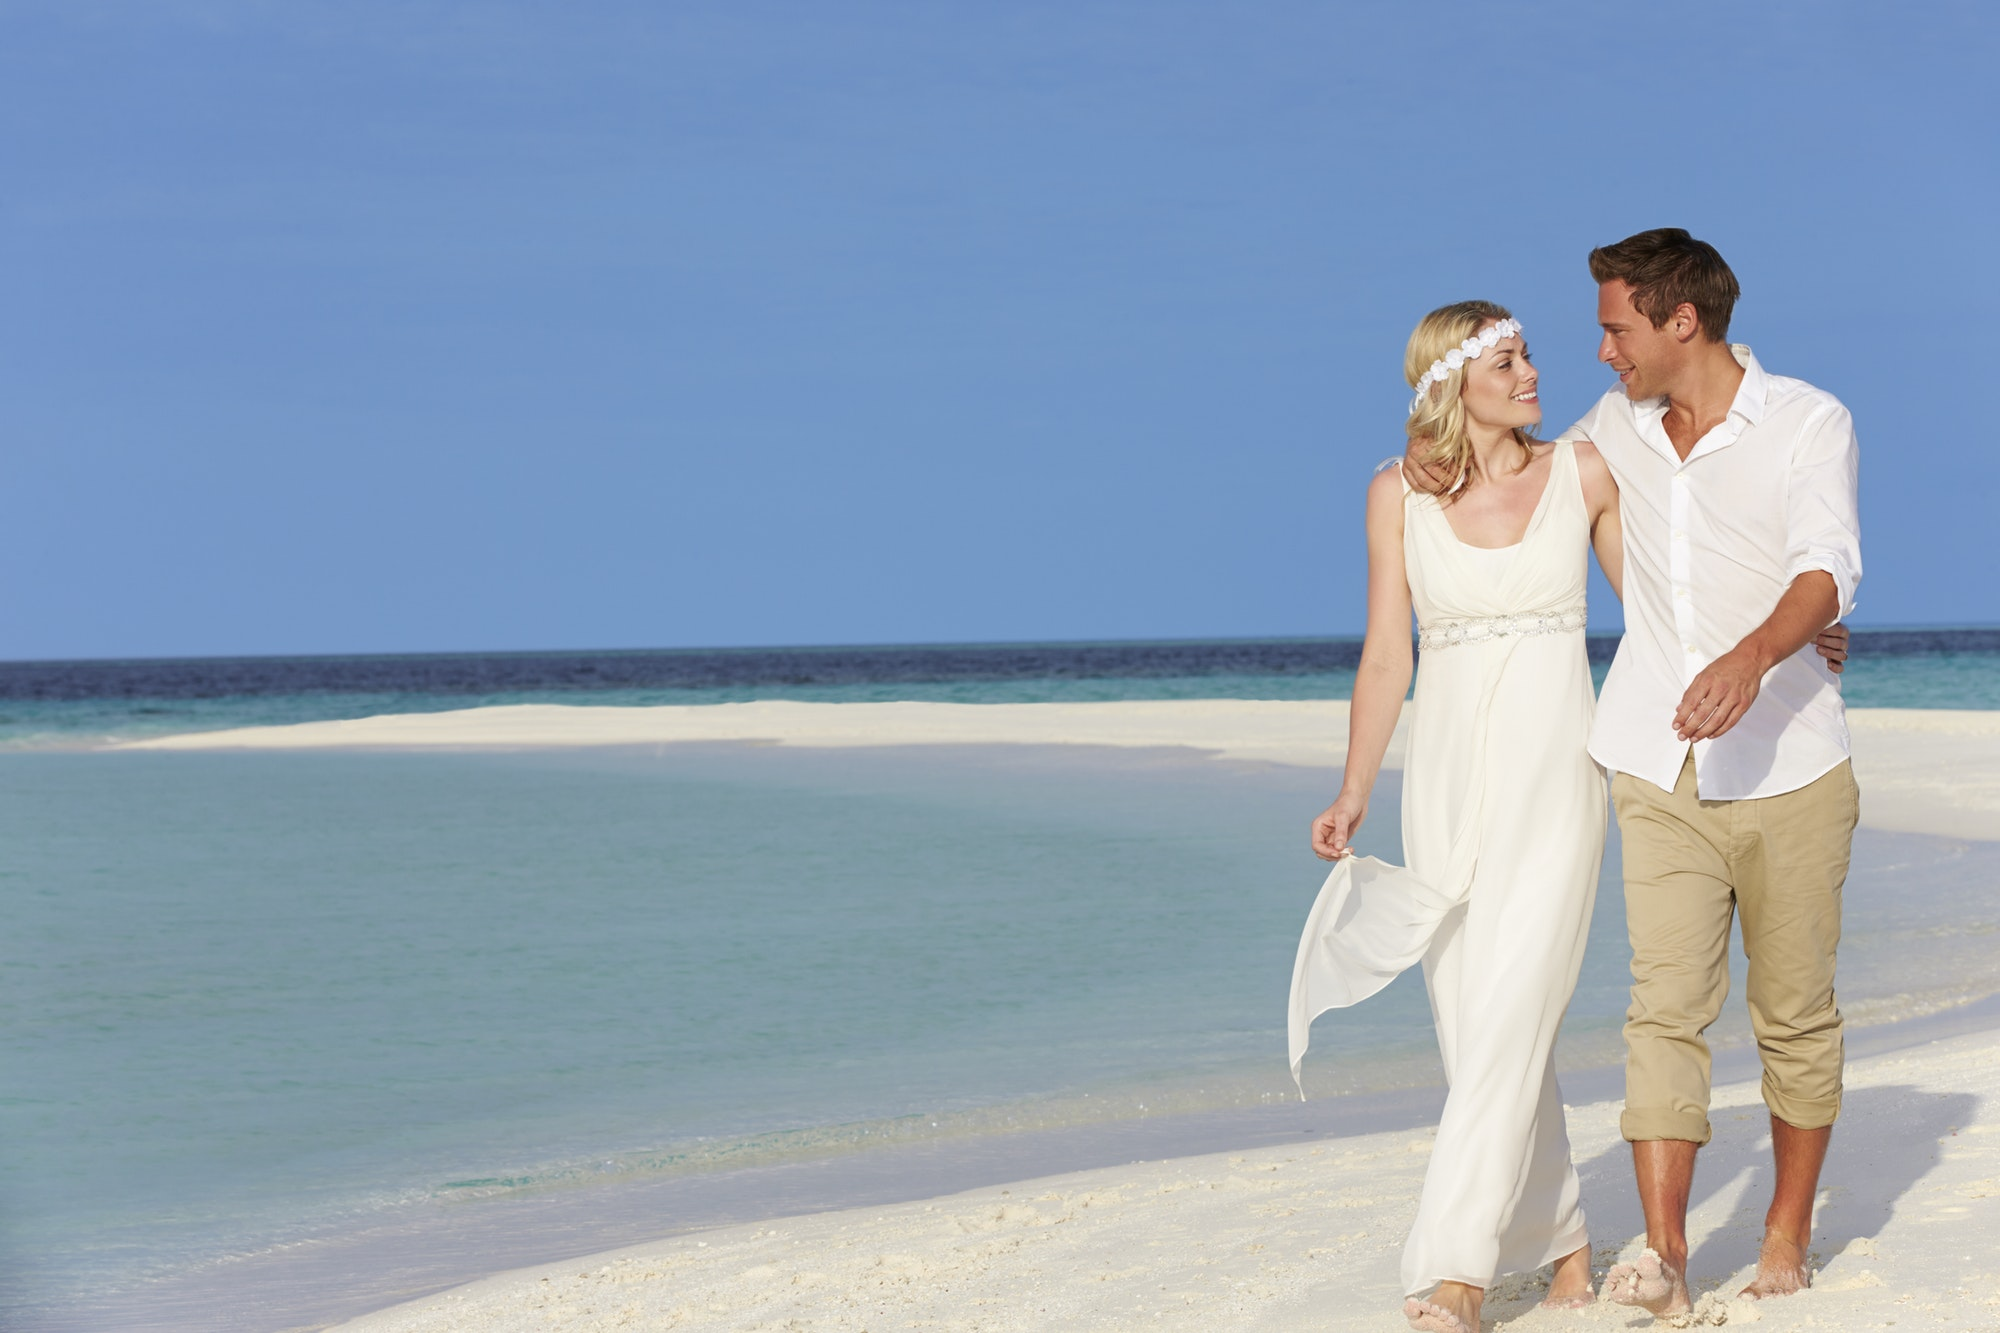 13th wedding anniversary gift ideas - A couple enjoying walking around beachside